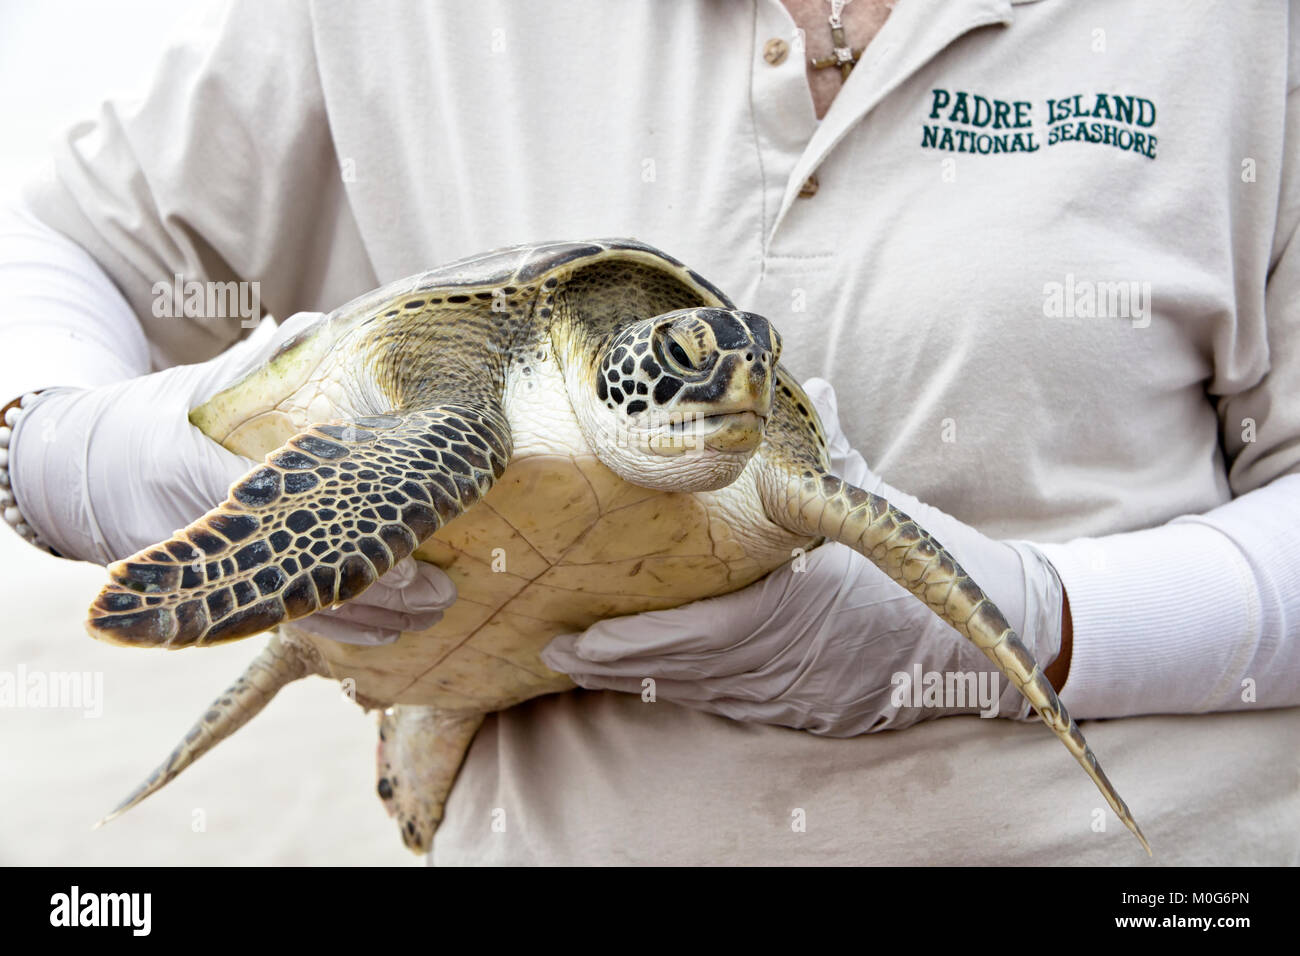 Female adult volunteer carrying & showing rehabilitated Kemp's Ridley Sea Turtle 'Lepidochelys kempii' - Stock Image